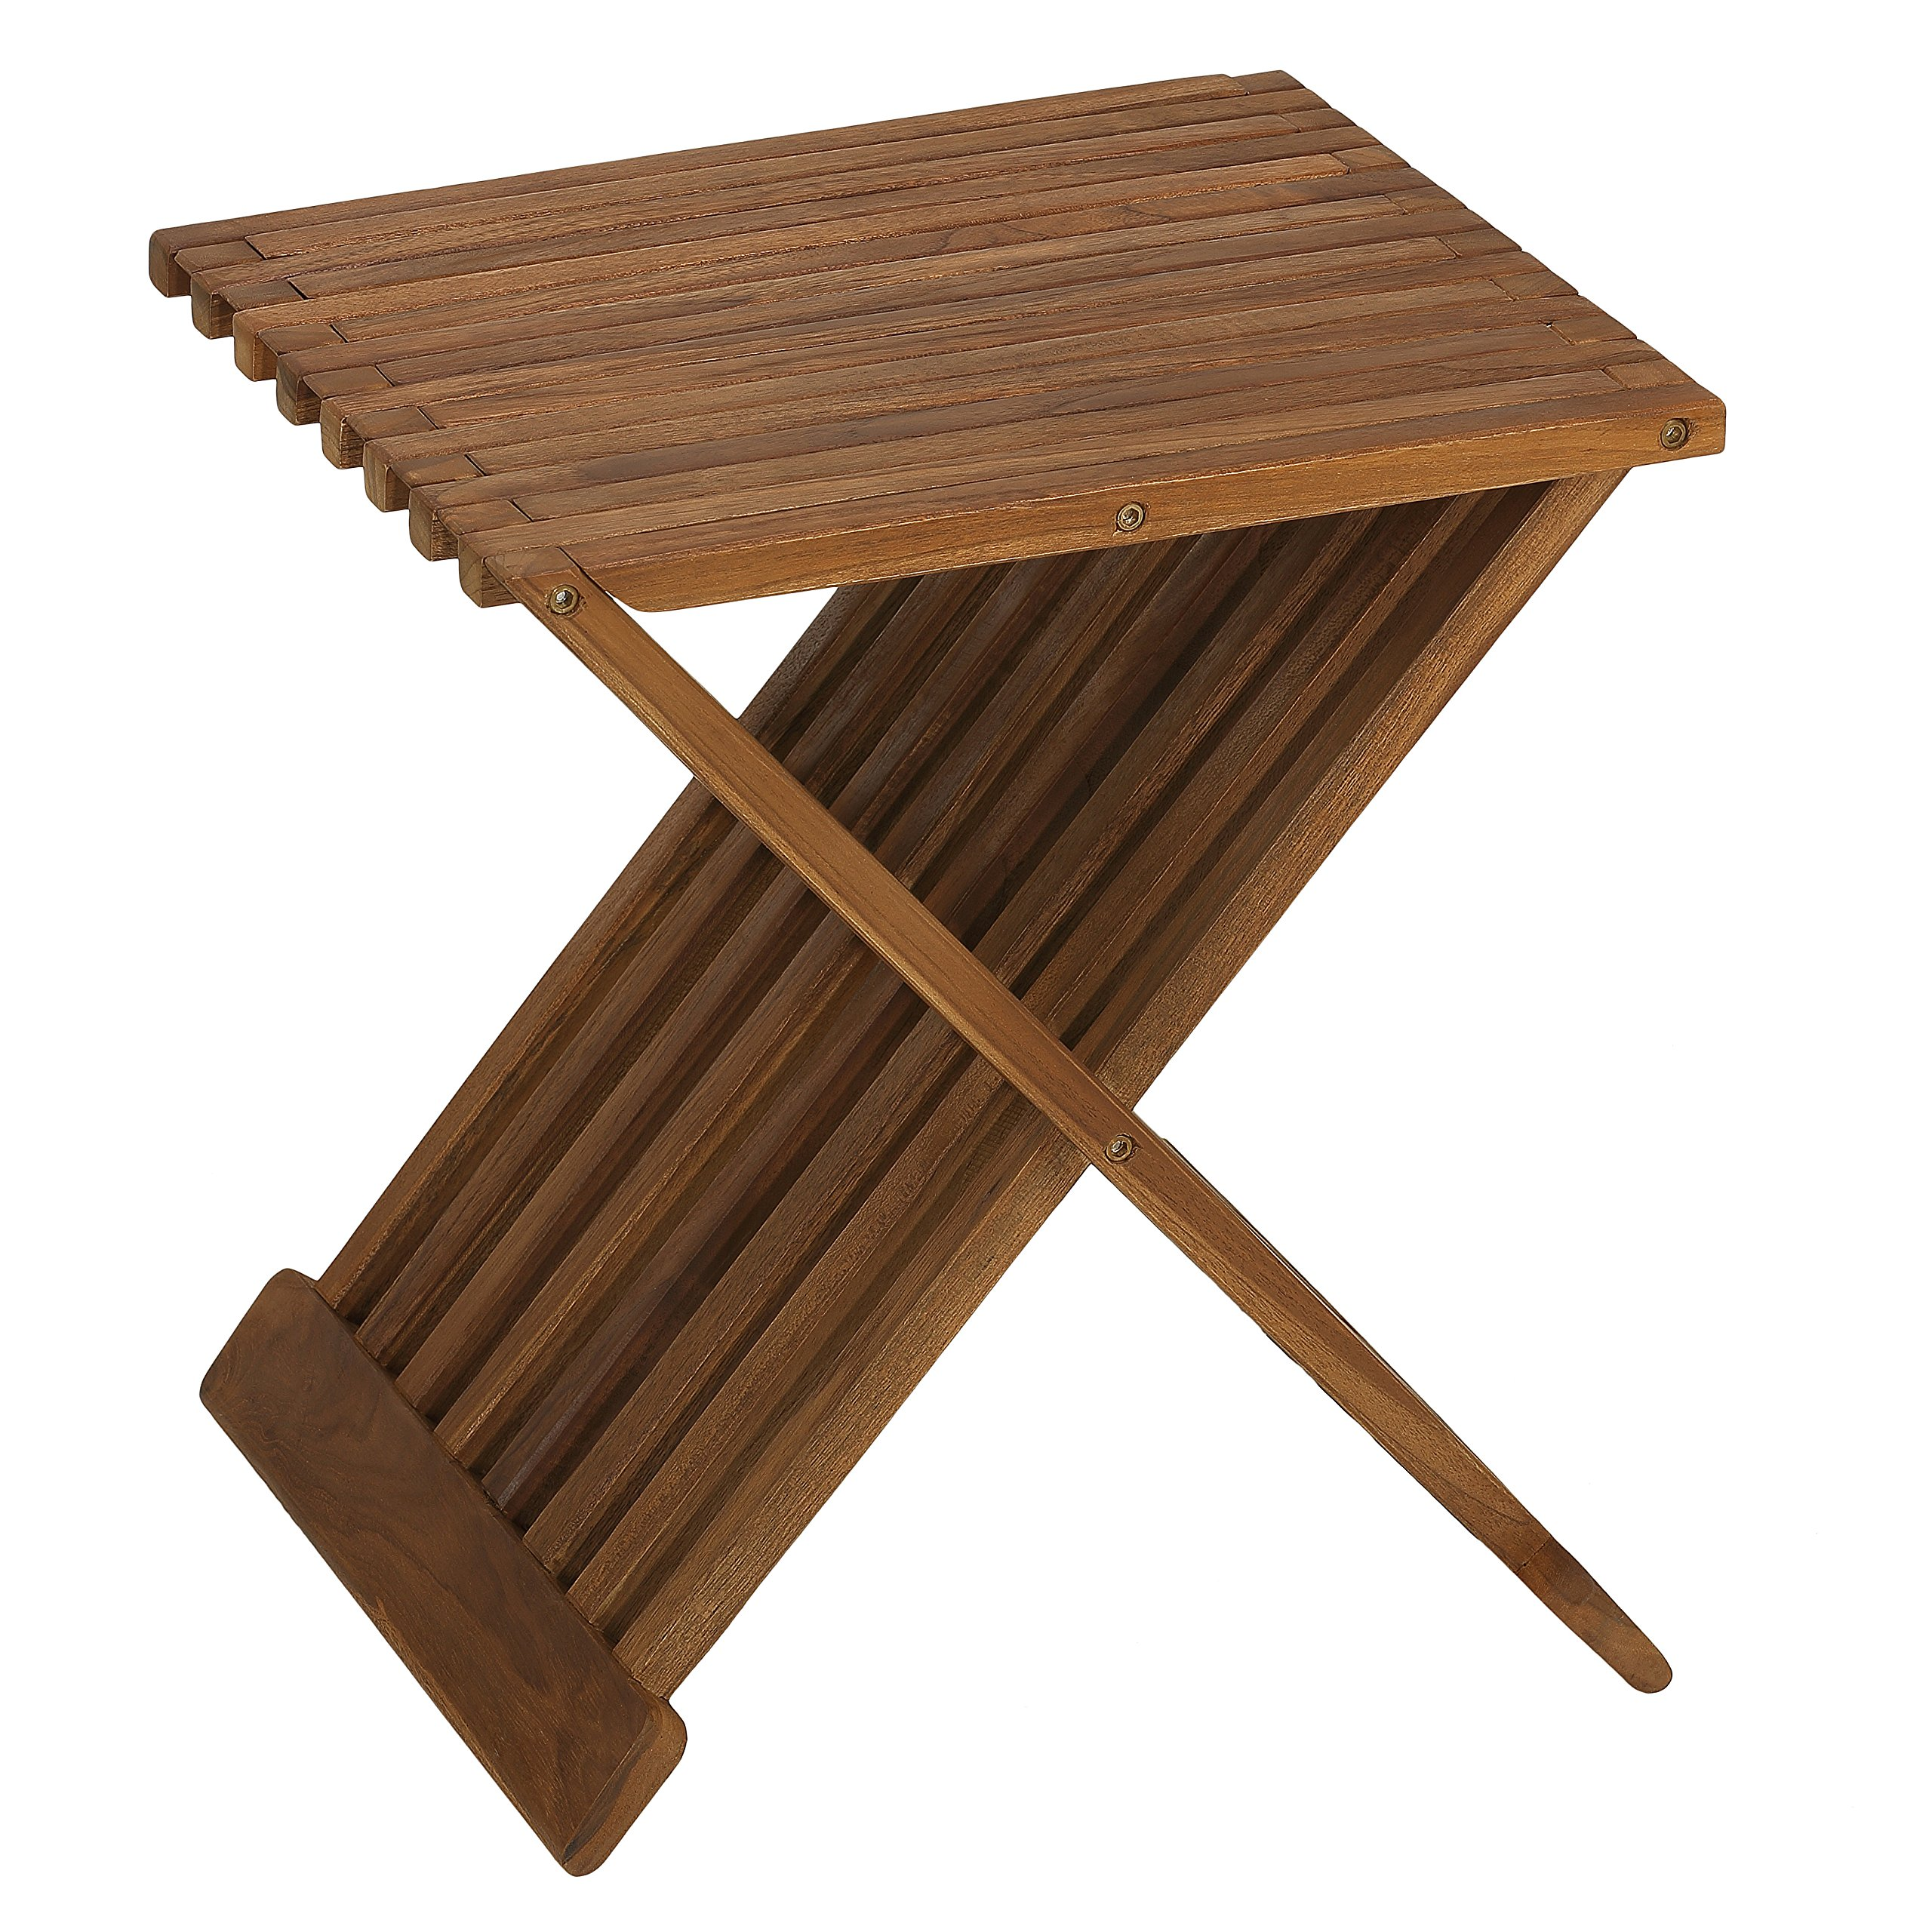 Bare Decor Rocco Folding Stool in Solid Teak Wood, Brown, 17 Inch